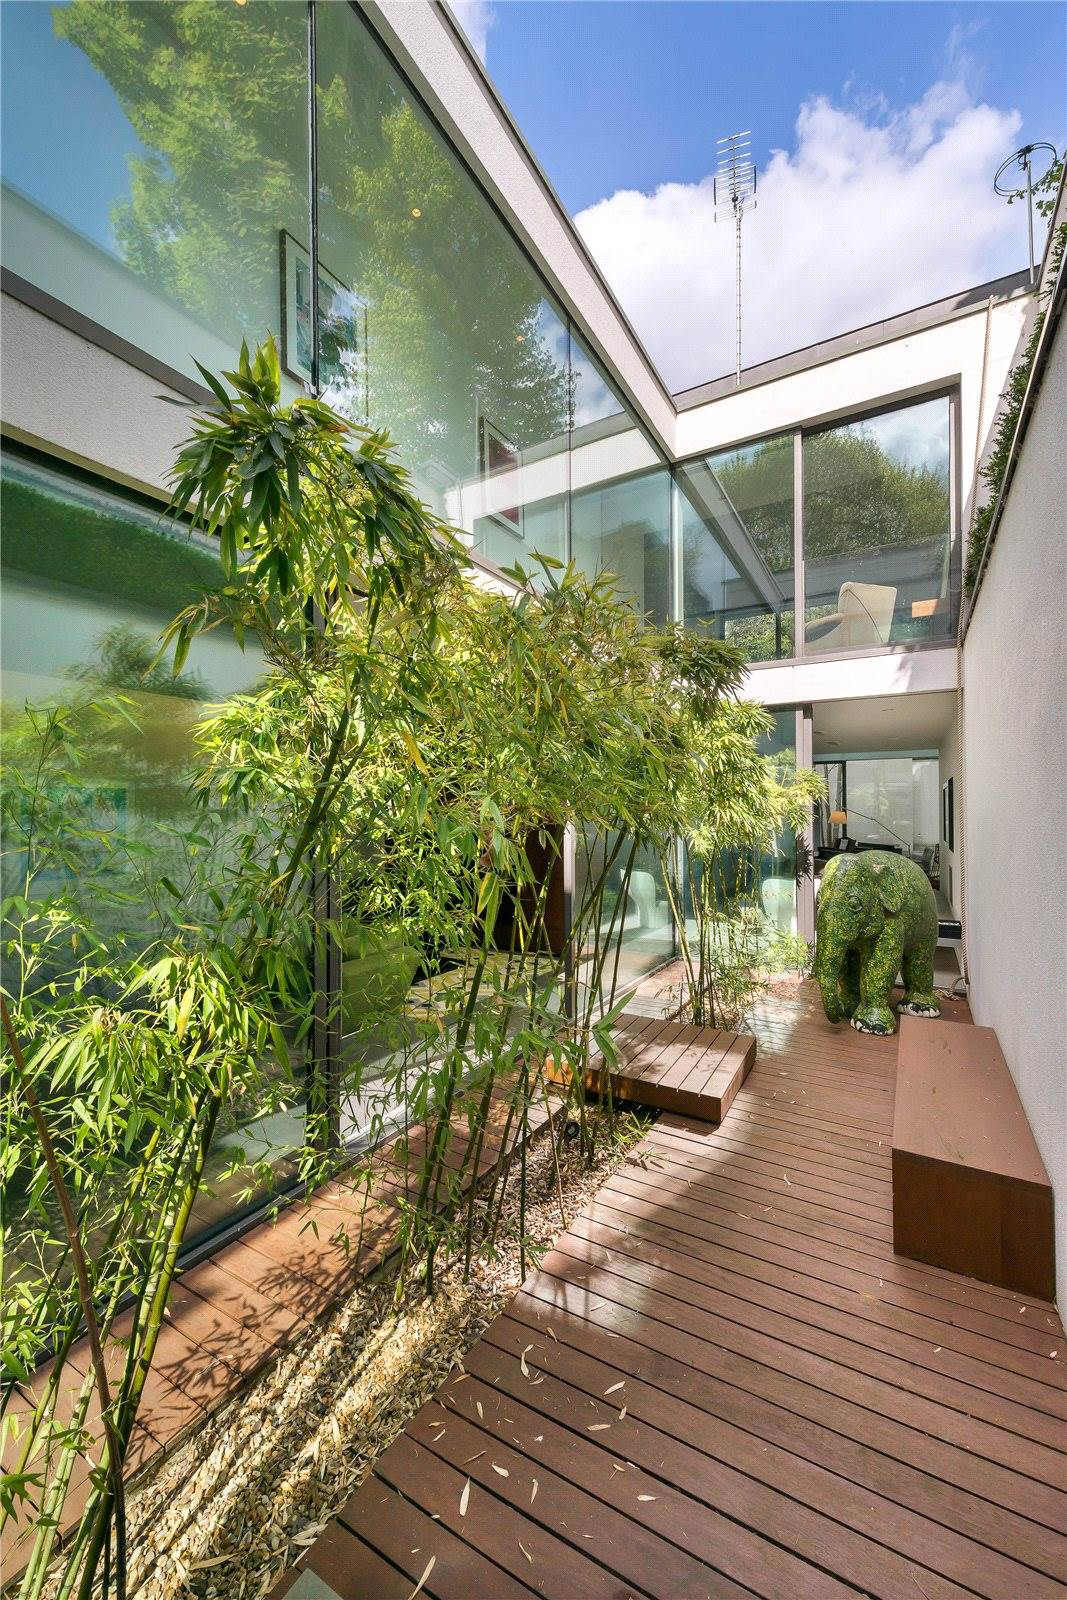 The living quarters are arranged over two stories, designed around a two-story atrium featuring an enchanting Japanese <i>Tsubo niwa</i>-style garden with lush plants and stone sculptures.